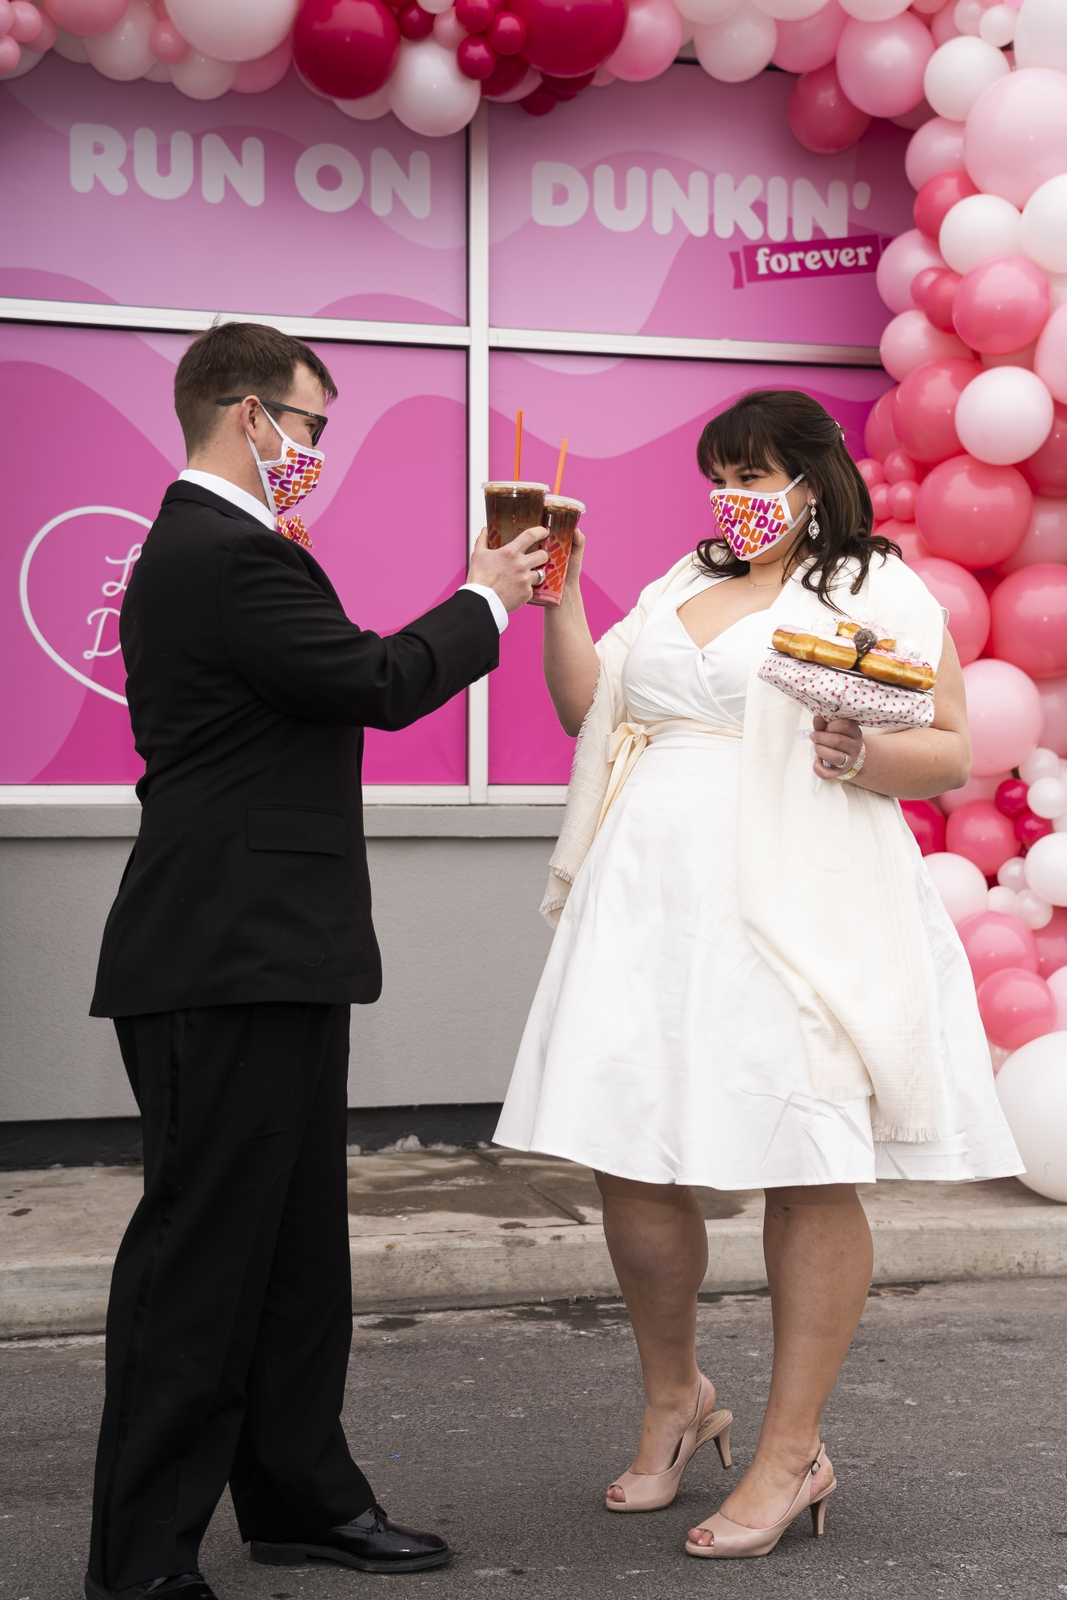 Marriage is On the Menu for Two New York Contest Winners